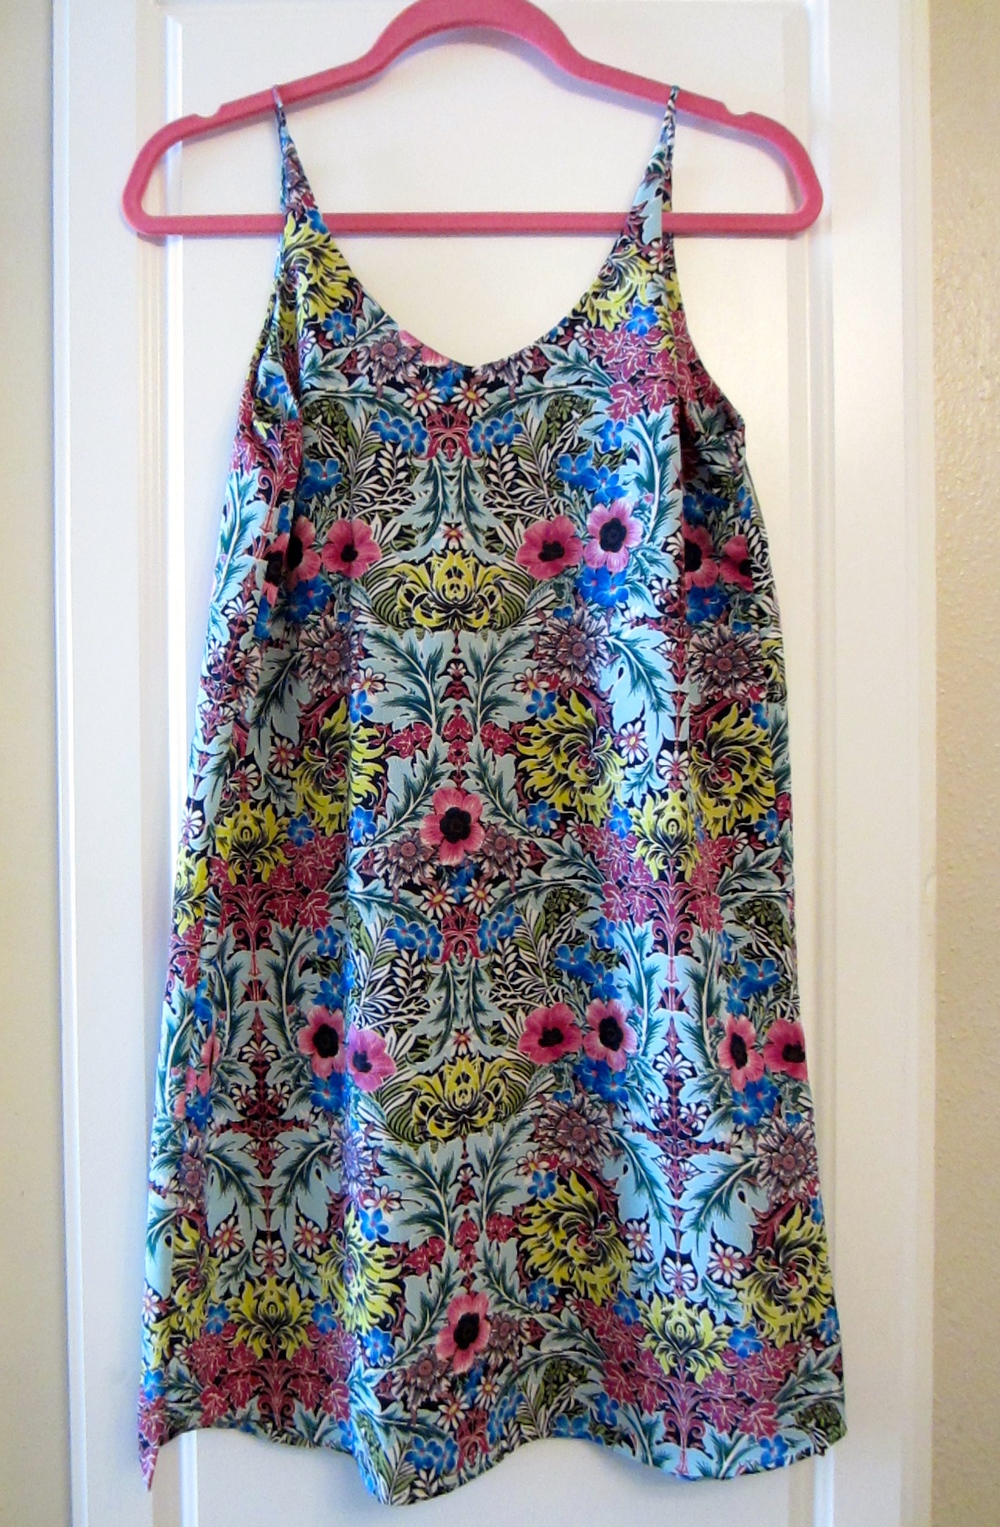 Topshop  dress I plan to wear on our beach day!